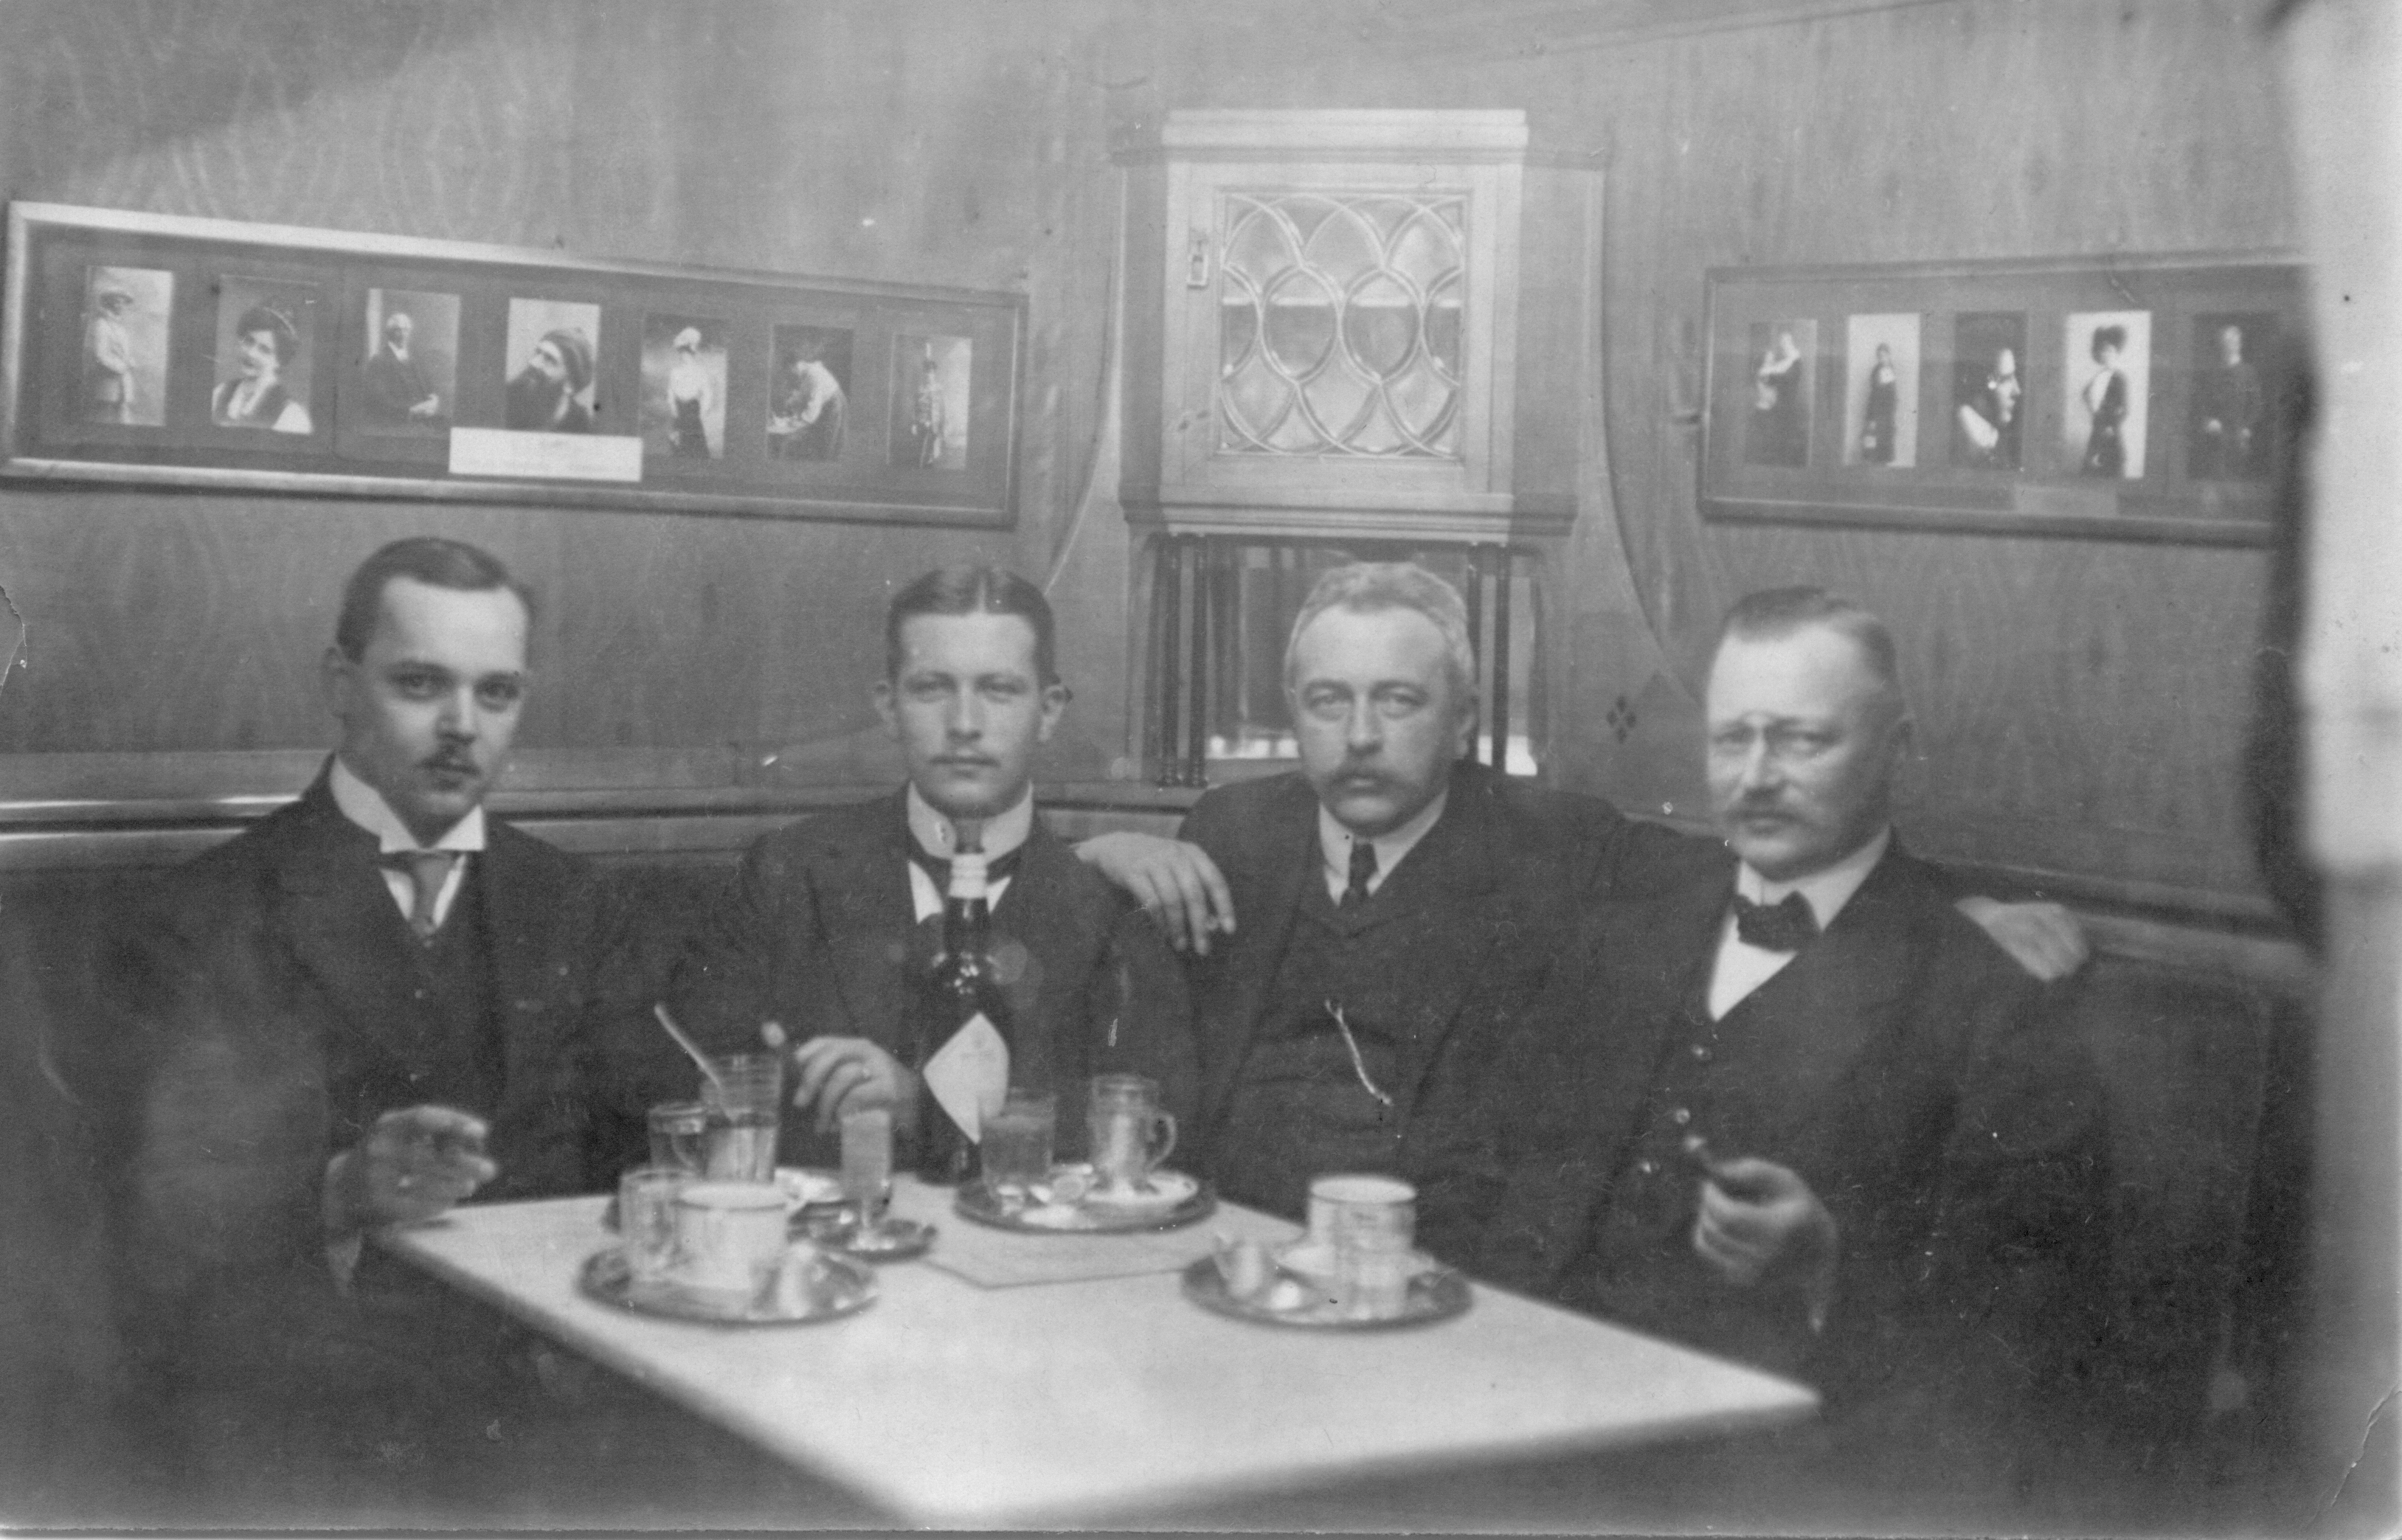 Prof. Alfred Voigt with colleagues in the Café Belvedere, 1912